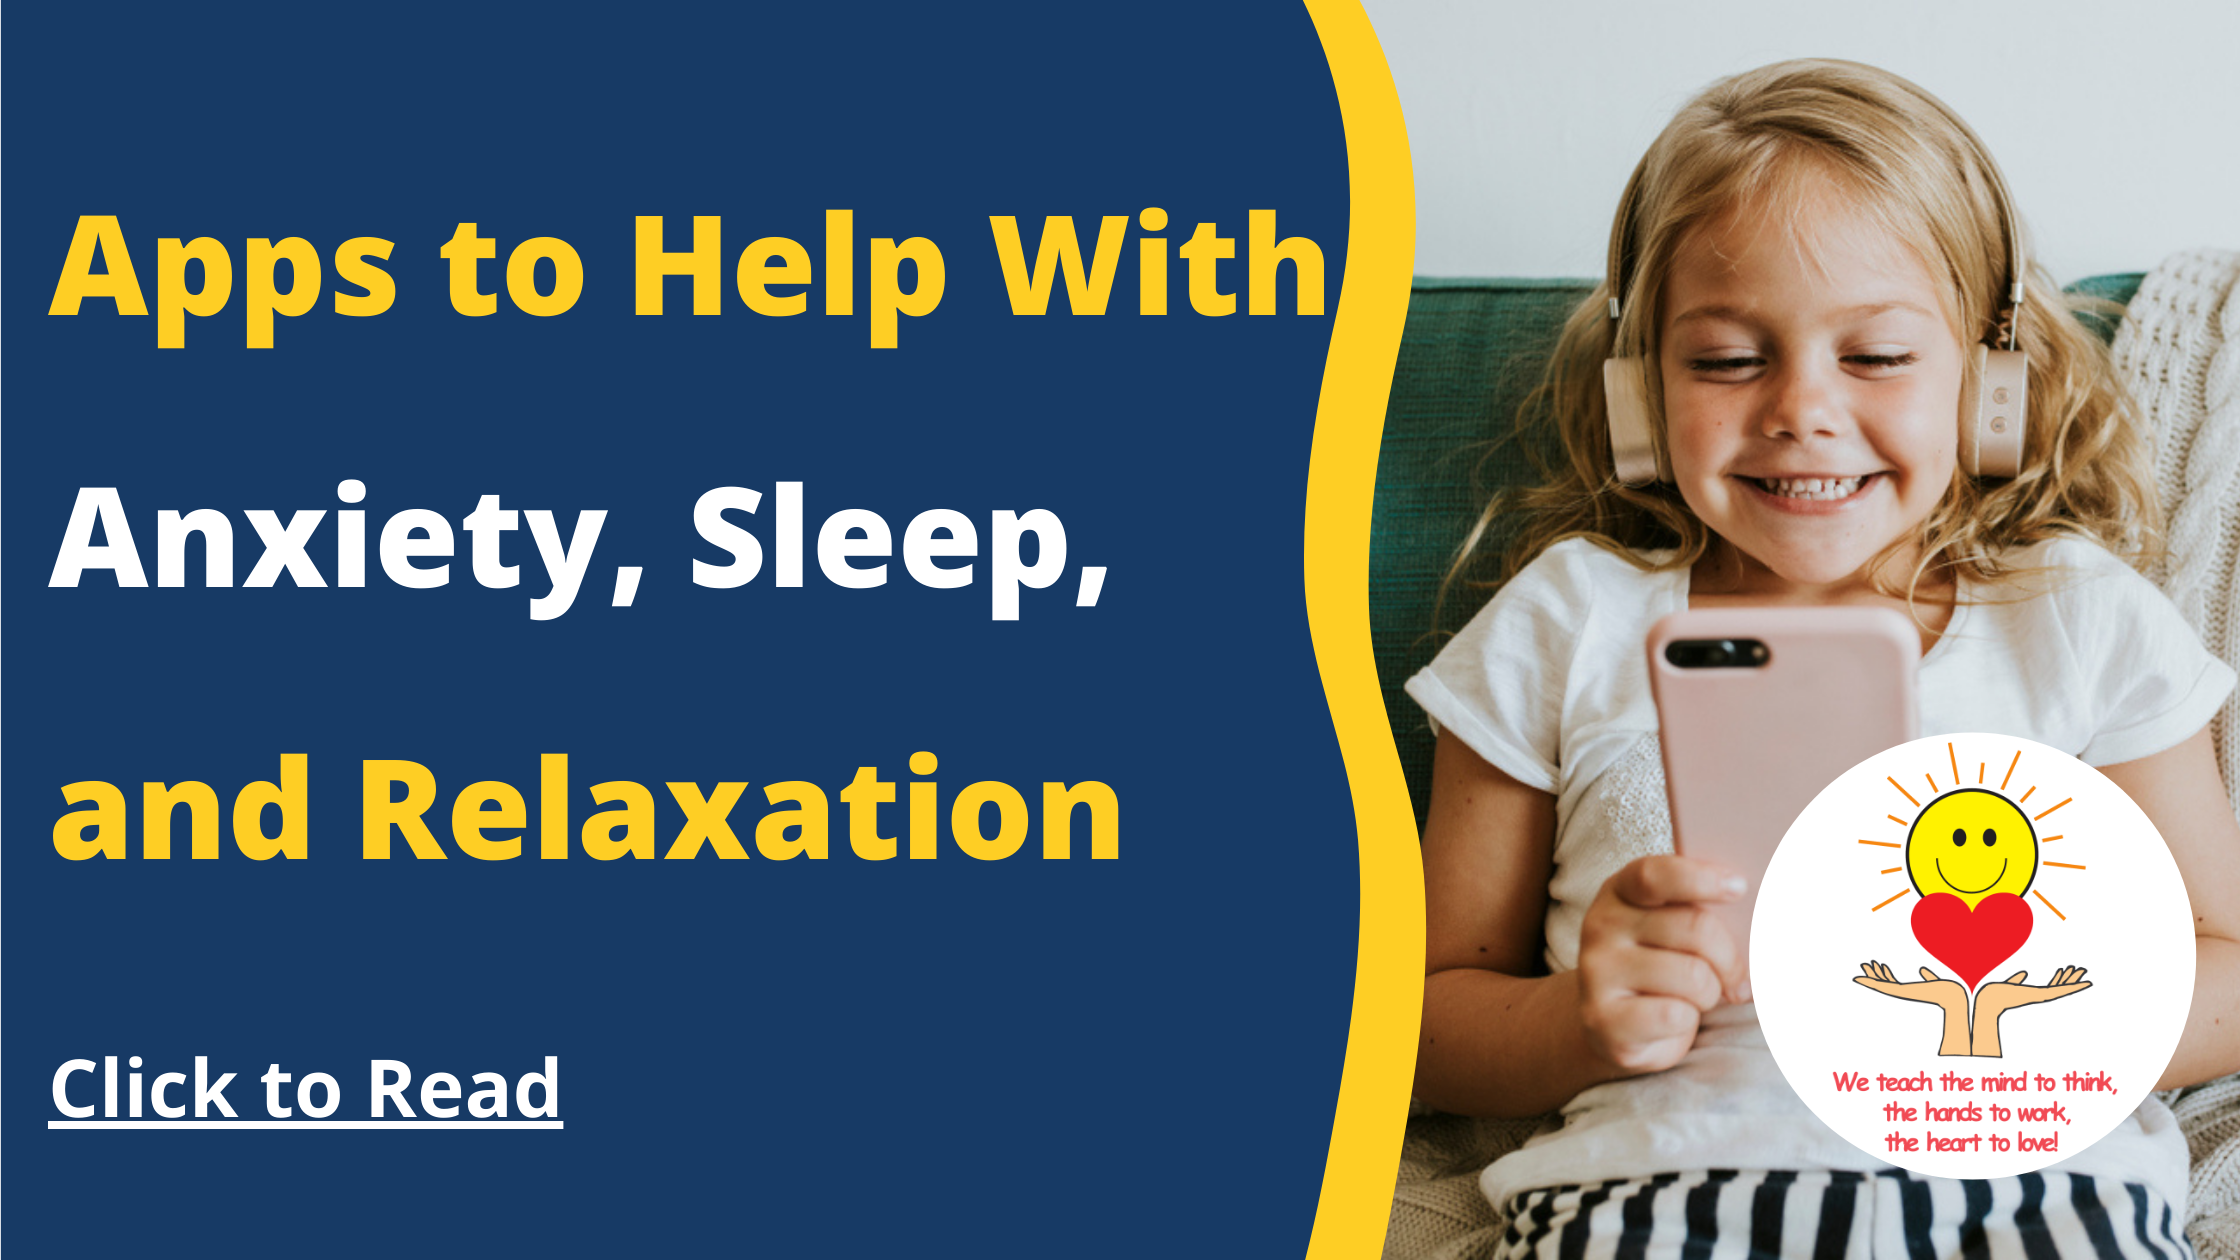 Apps to Help With Anxiety, Sleep, and Relaxation